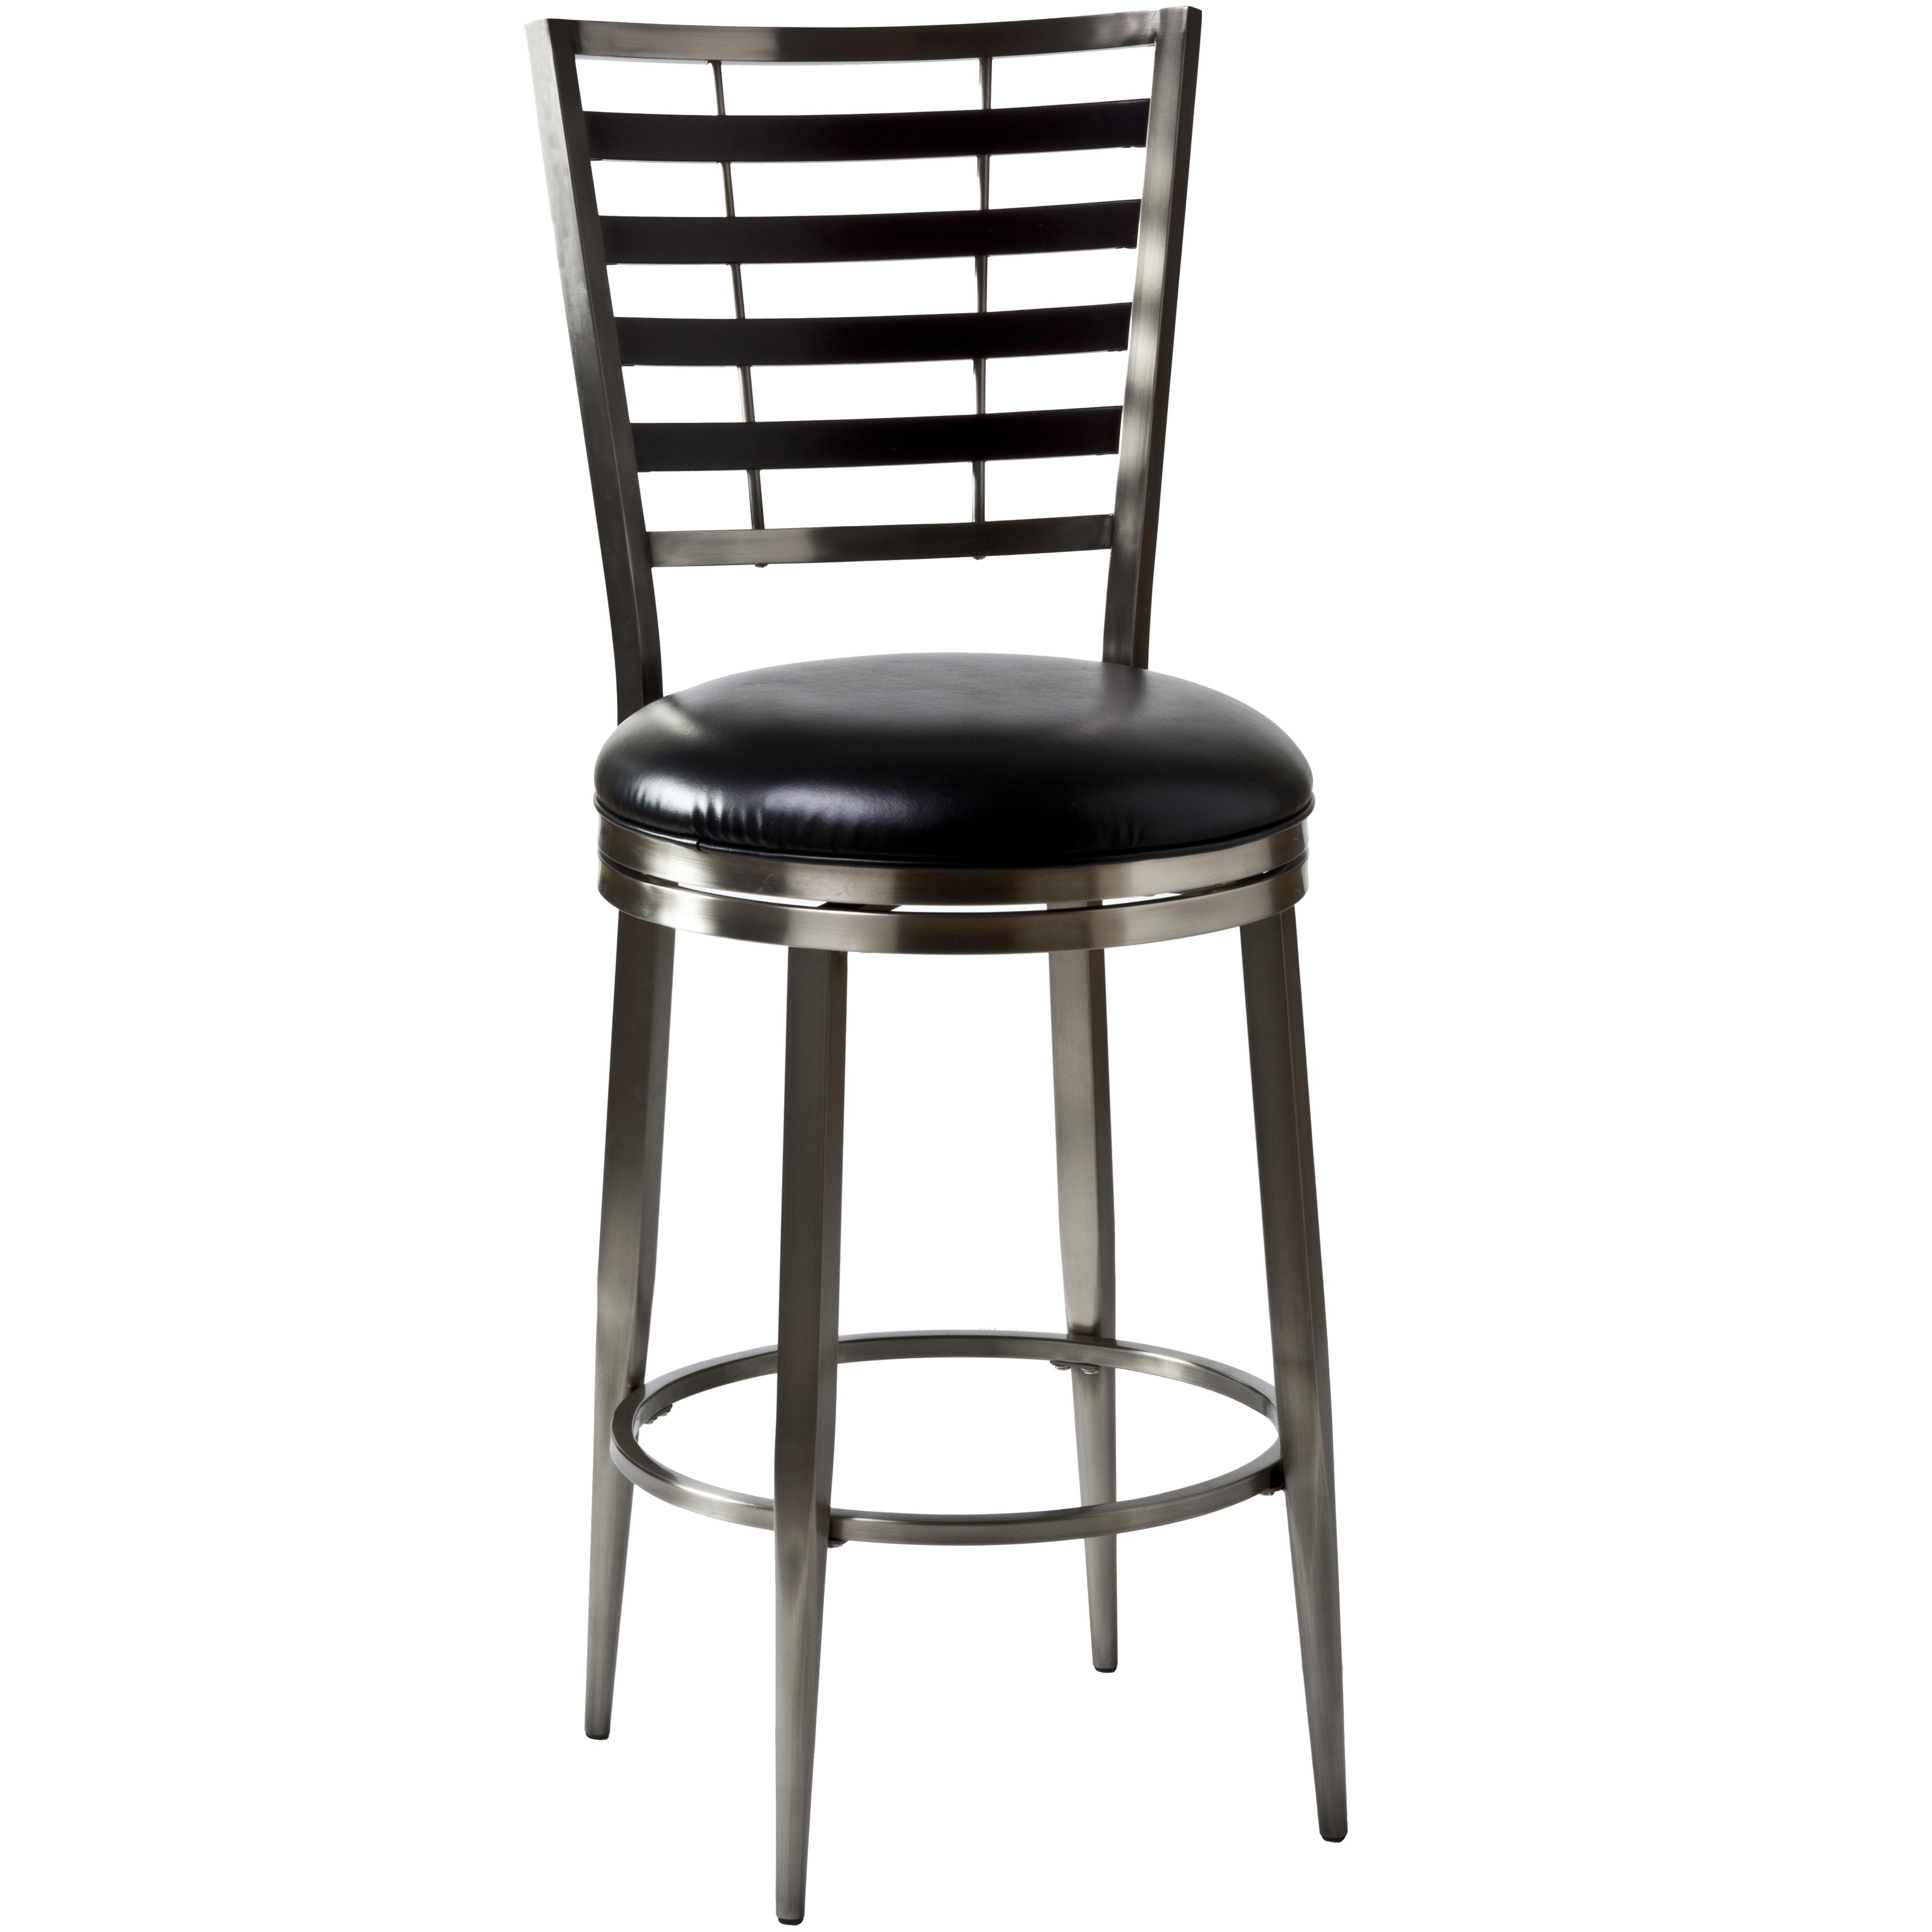 "Hillsdale Metal Stools 26"" Bowman Counter Stool - Item Number: 5246-826"